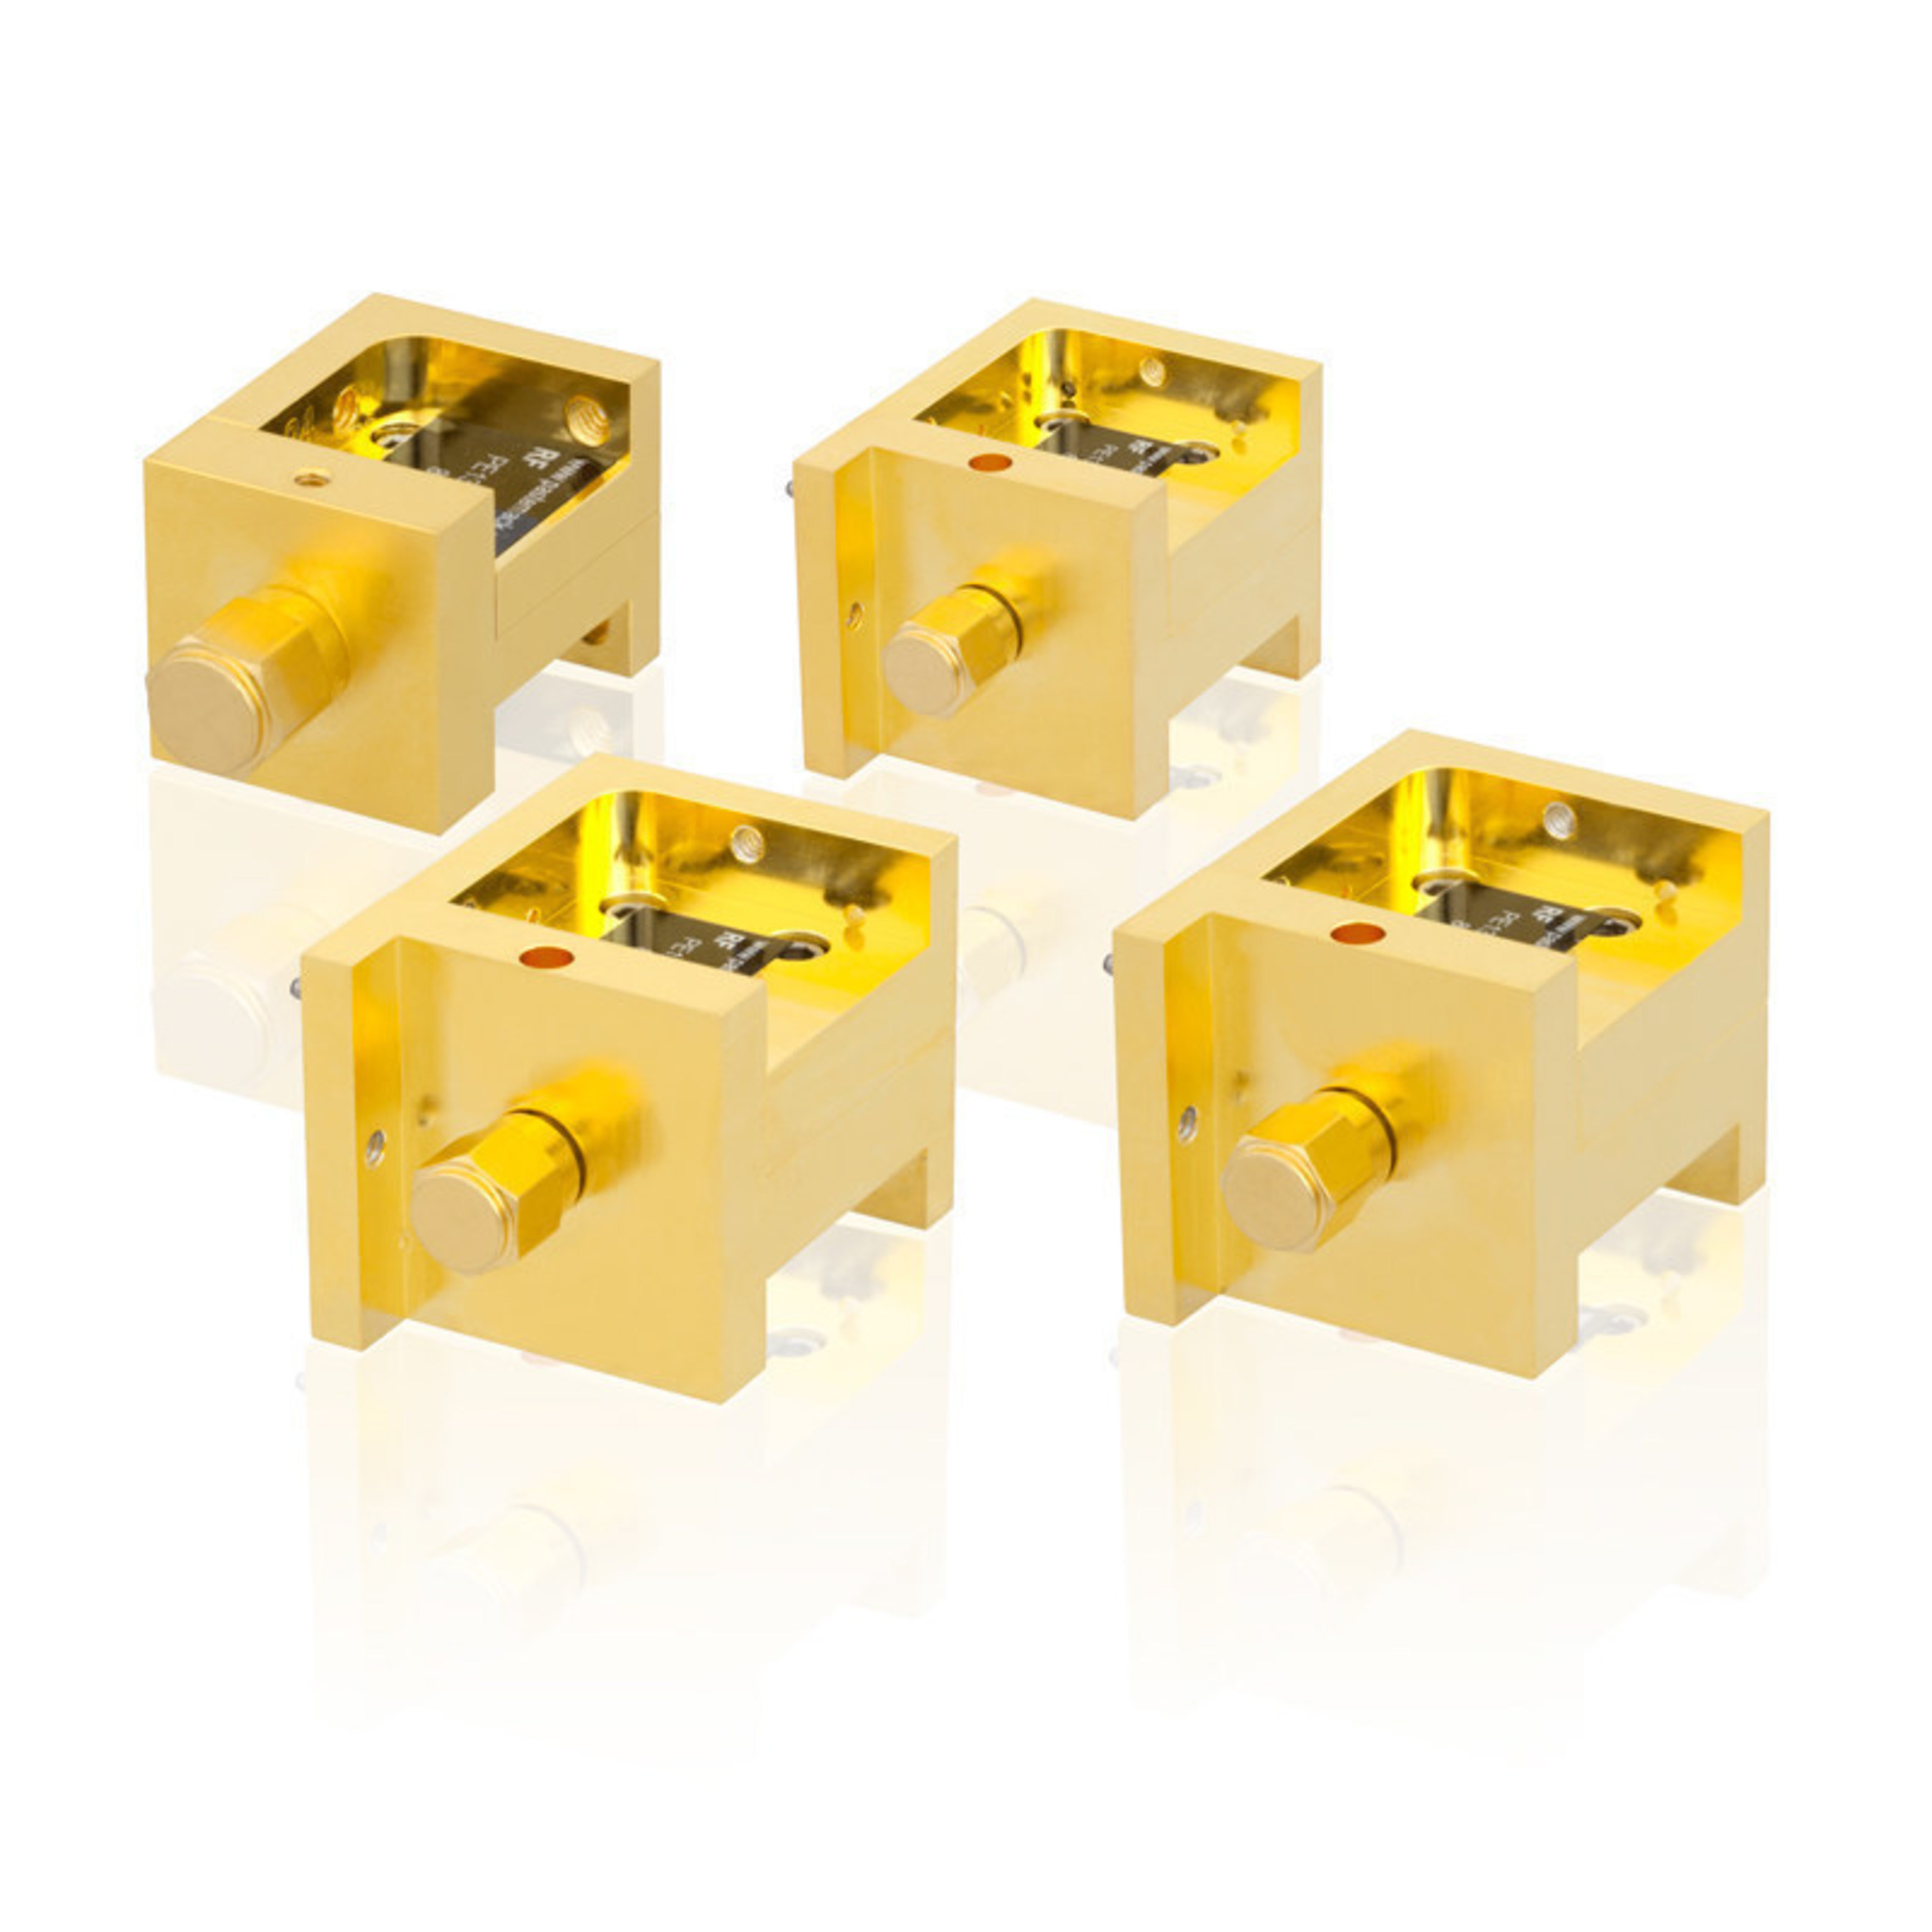 Pasternack Waveguide Frequency Mixers Operate Across full Ka, Q, U, V, E & W Millimeter Wave Bands